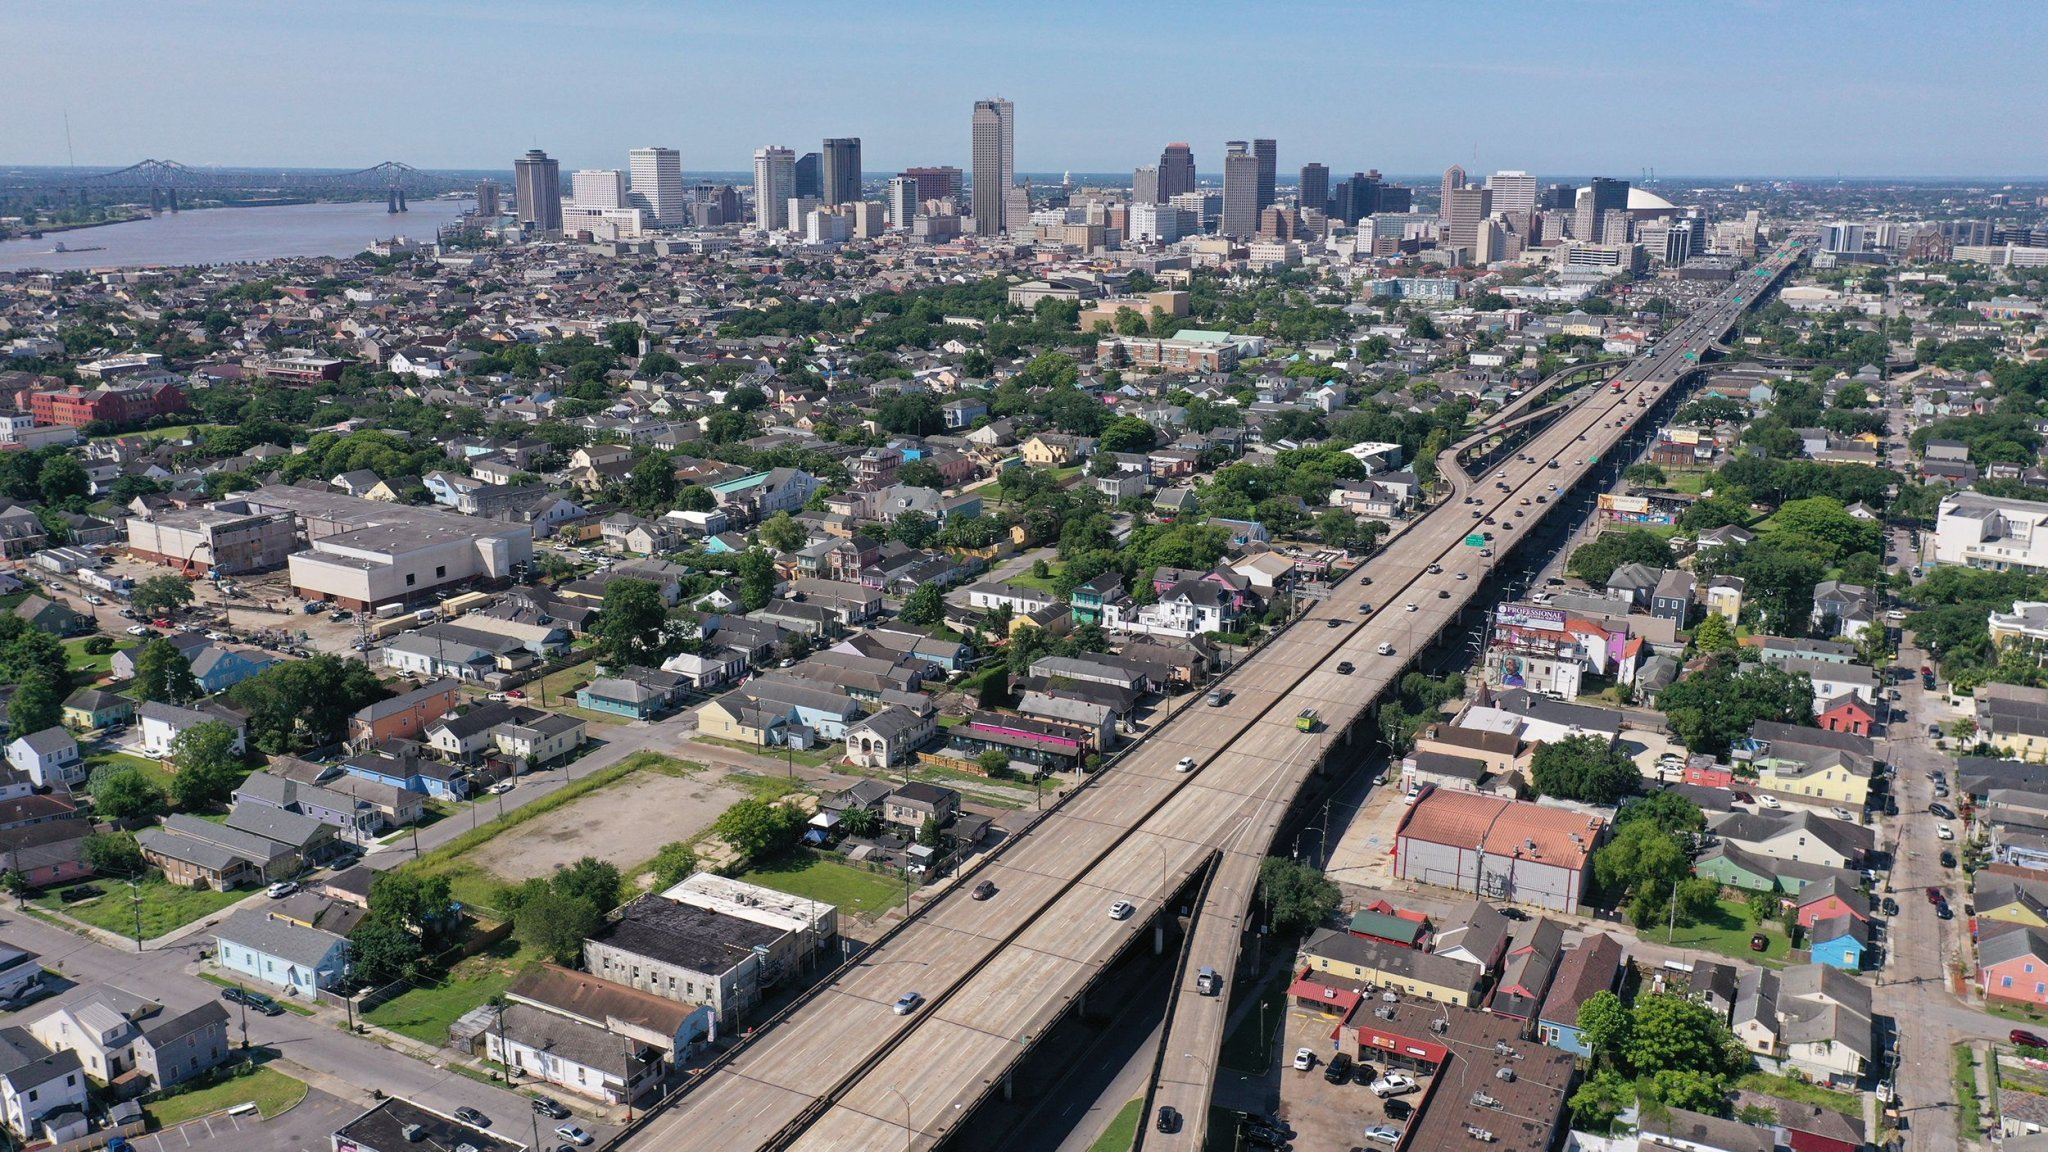 Bulldozed and bisected:  Highway construction built a legacy of inequality